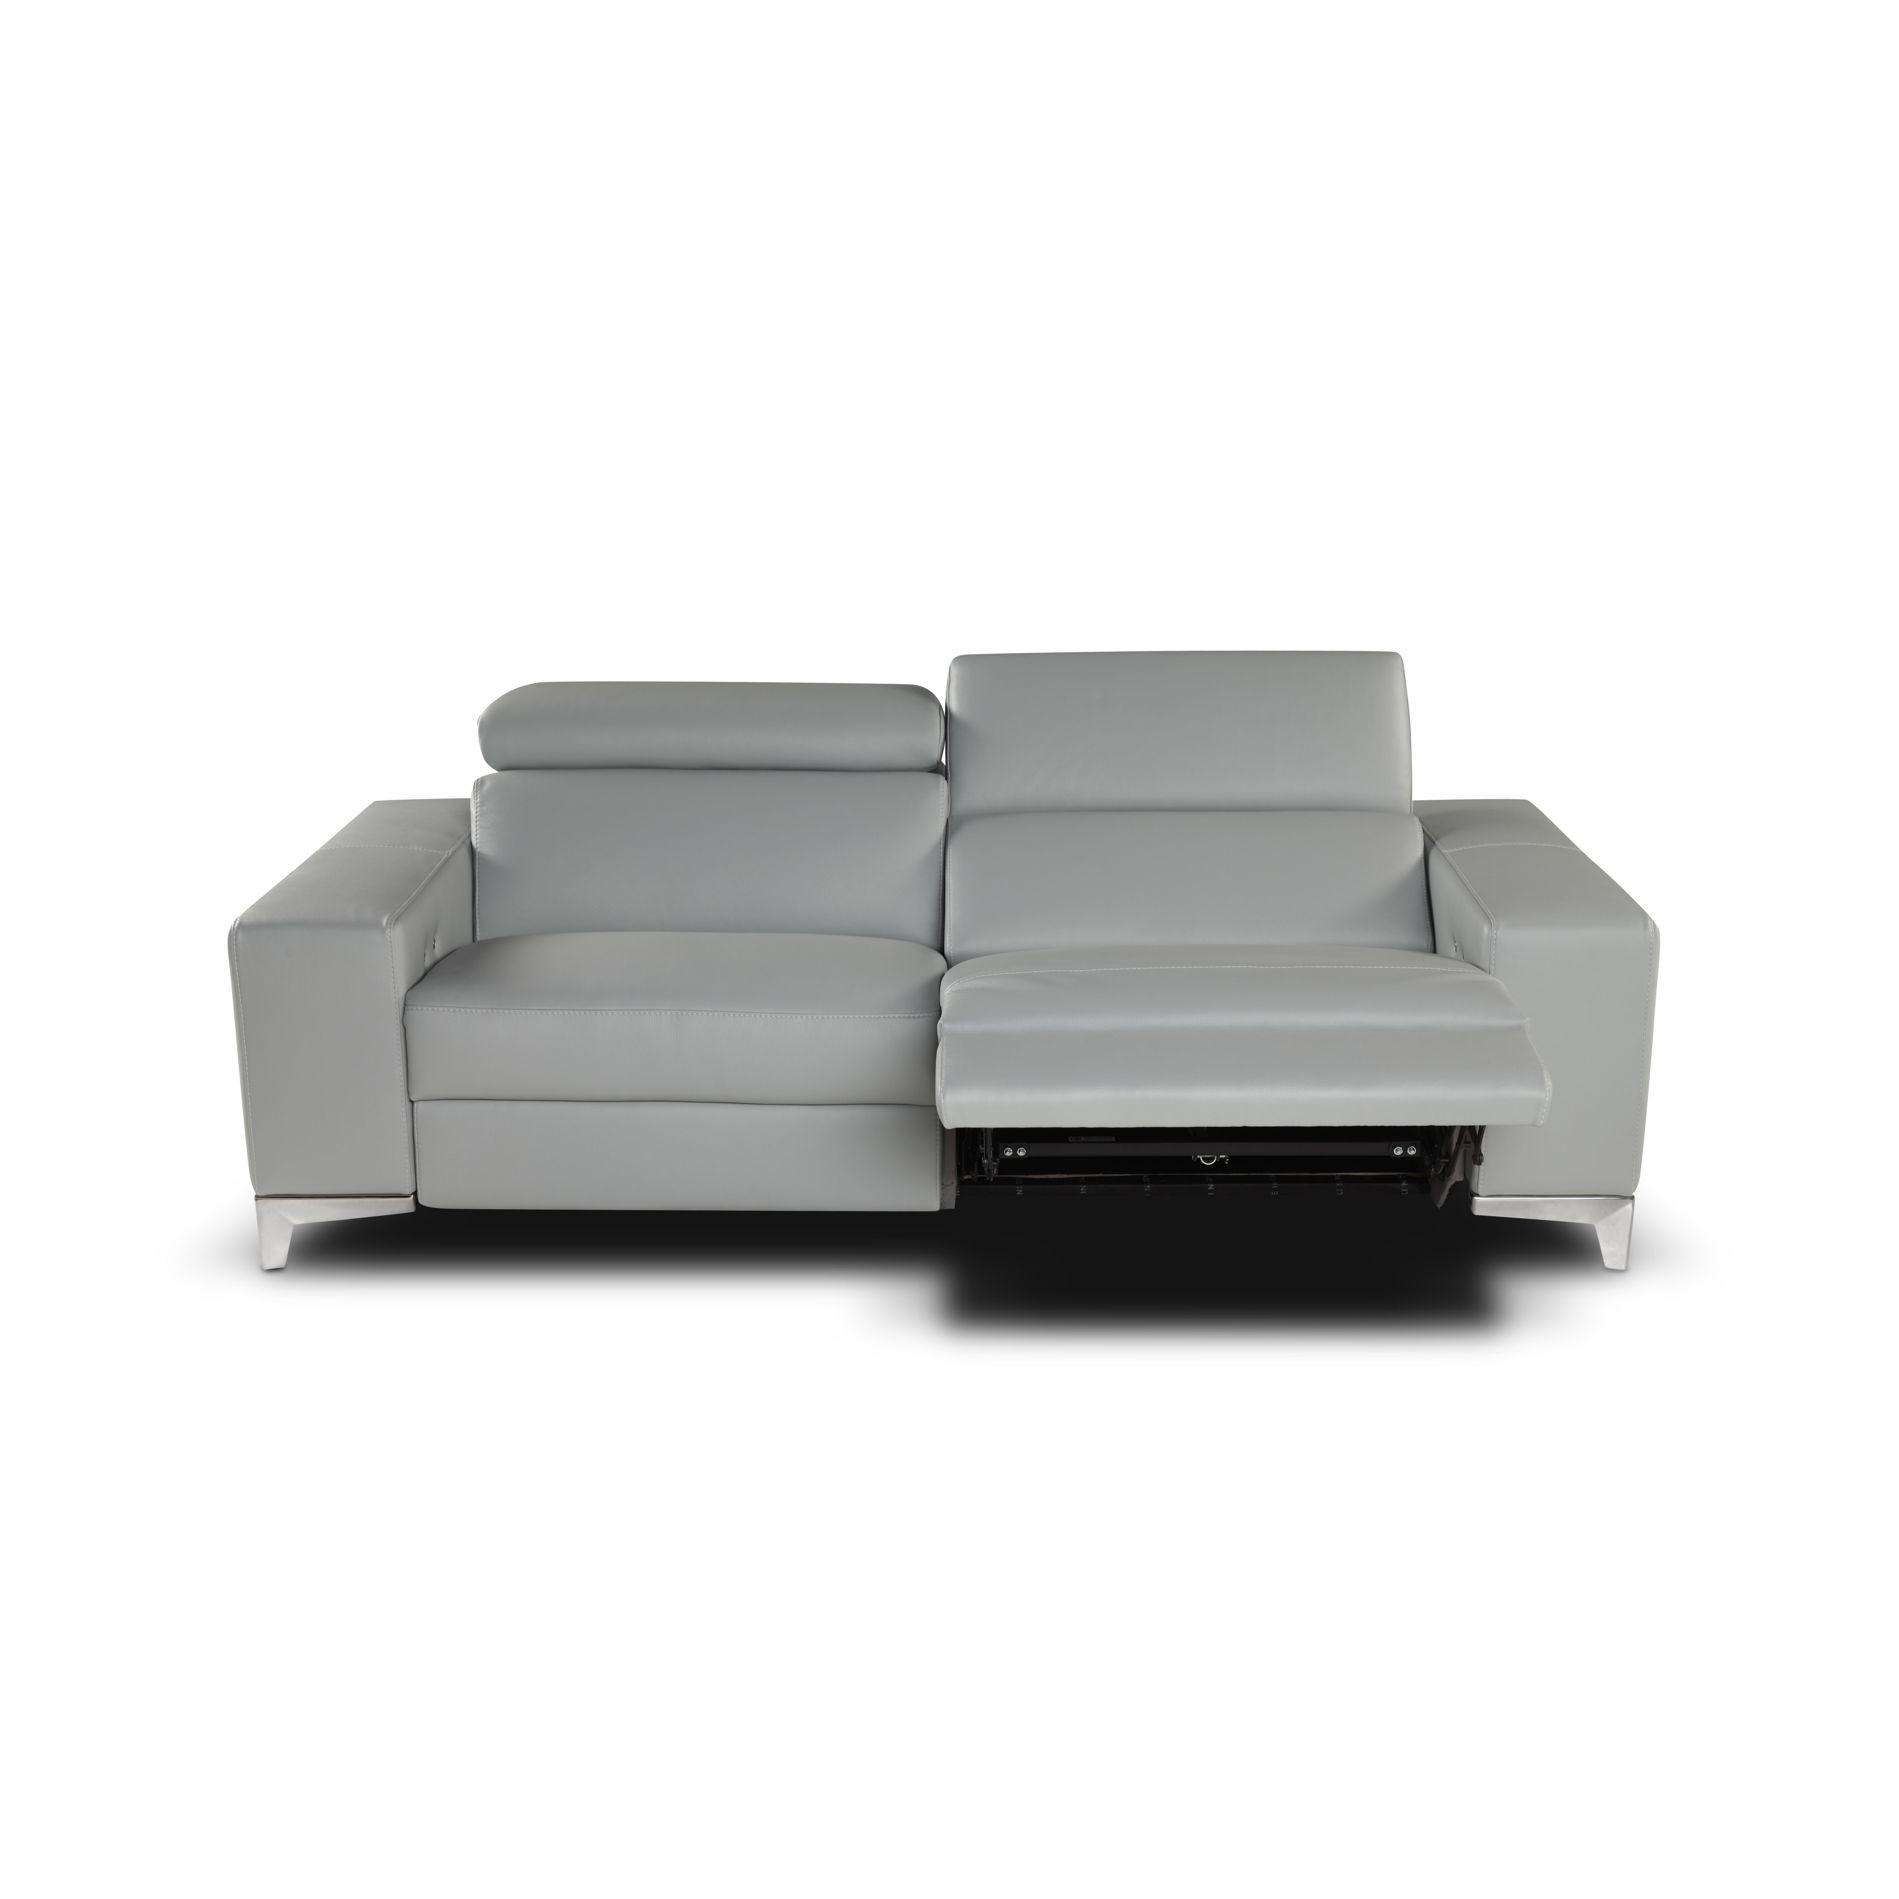 Queen Leather Sofa Set | Giuseppe&giuseppe for Italian Recliner Sofas